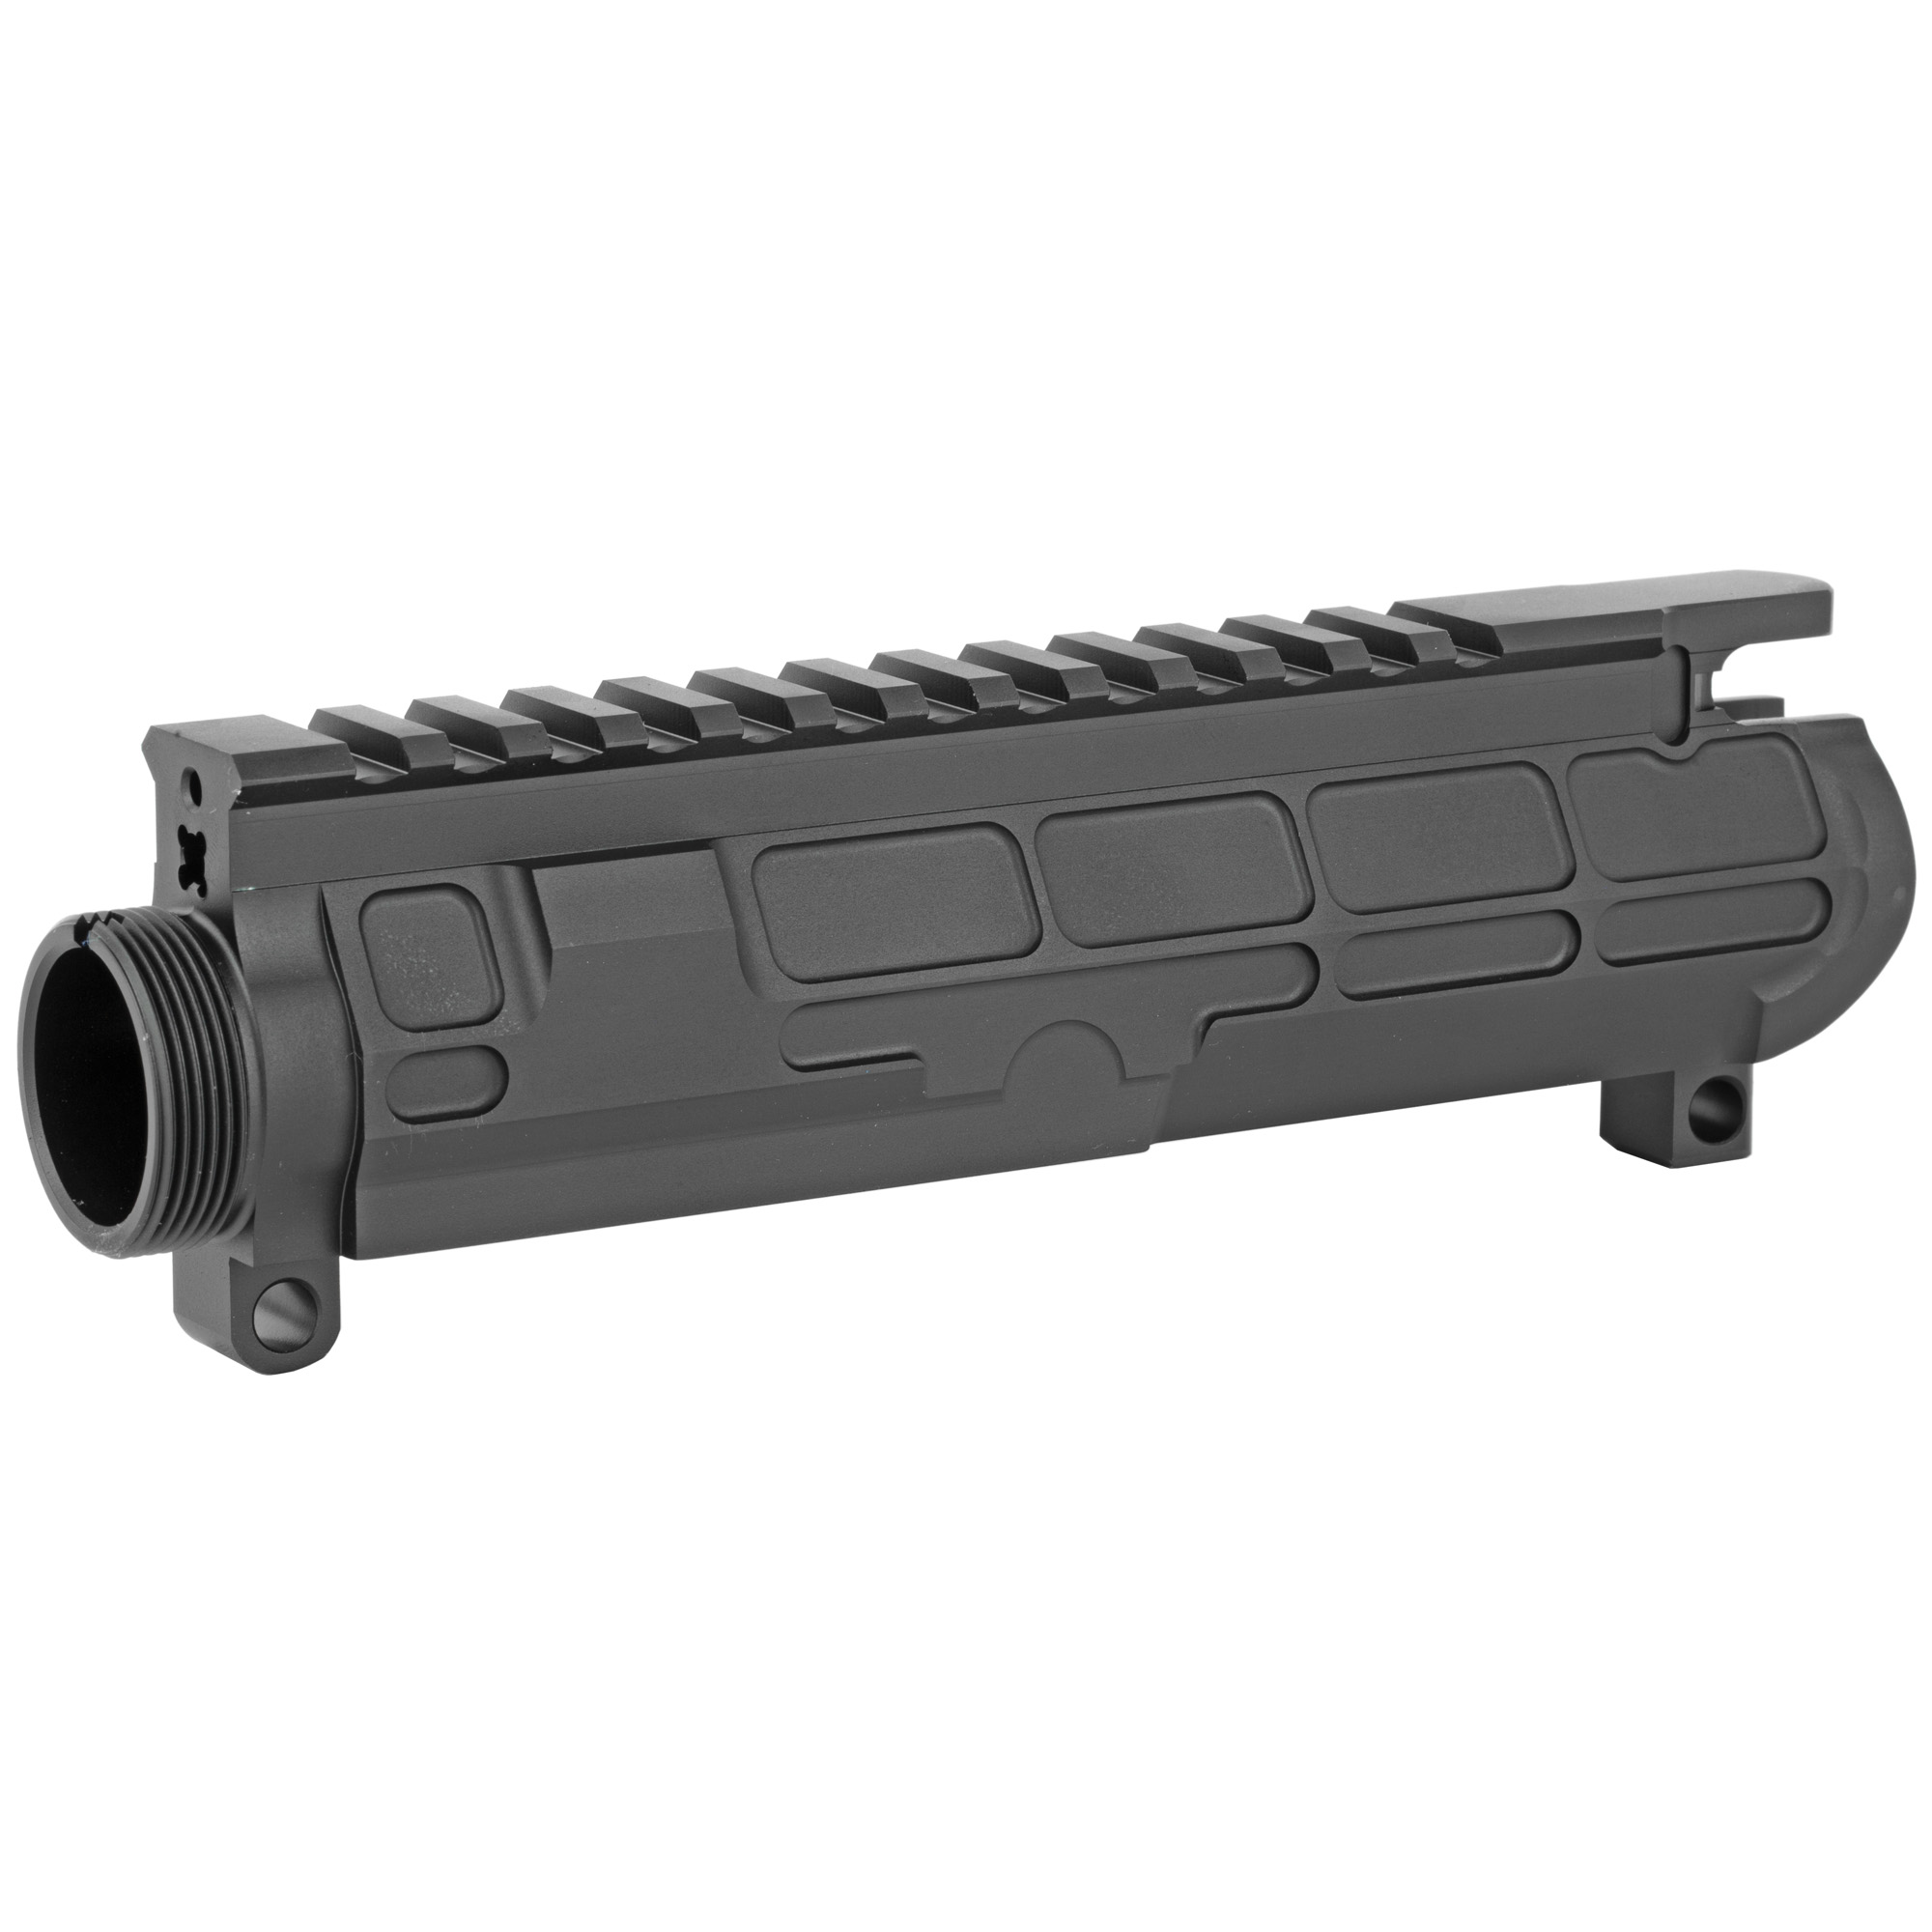 """The STT PILLAR upper receiver is the lightest billet upper available today! STT wanted to create something better"""" something different. Being better was not enough -- STT needed to design an upper that overcame the shortcomings seen in the current offerings . It needed to be lighter"""" stronger"""" and different"""" and all while looking good doing it. SST wasn't going to settle for just hacking another receiver out of a block and calling it good. The first thing people will notice is the truss pockets. With the shooting styles of today's shooters everyone wants to run 15"""" & 16"""" long rails and grip the rail as far out as possible to gain the most control of the rifle. That's like attaching a 16"""" lever to the rifle. The truss design acts similar to a bridge that carries and distributes the stress across the entire platform verses putting all of the stress on the material right behind the threads of the receiver. The extra strength gained from this design is not only to help the receiver. It also in turn helps improve your accuracy. When most people think of a billet receiver they think of a blocky"""" heavy"""" thick design that is CNC machined. STT wanted to break that mold too."""